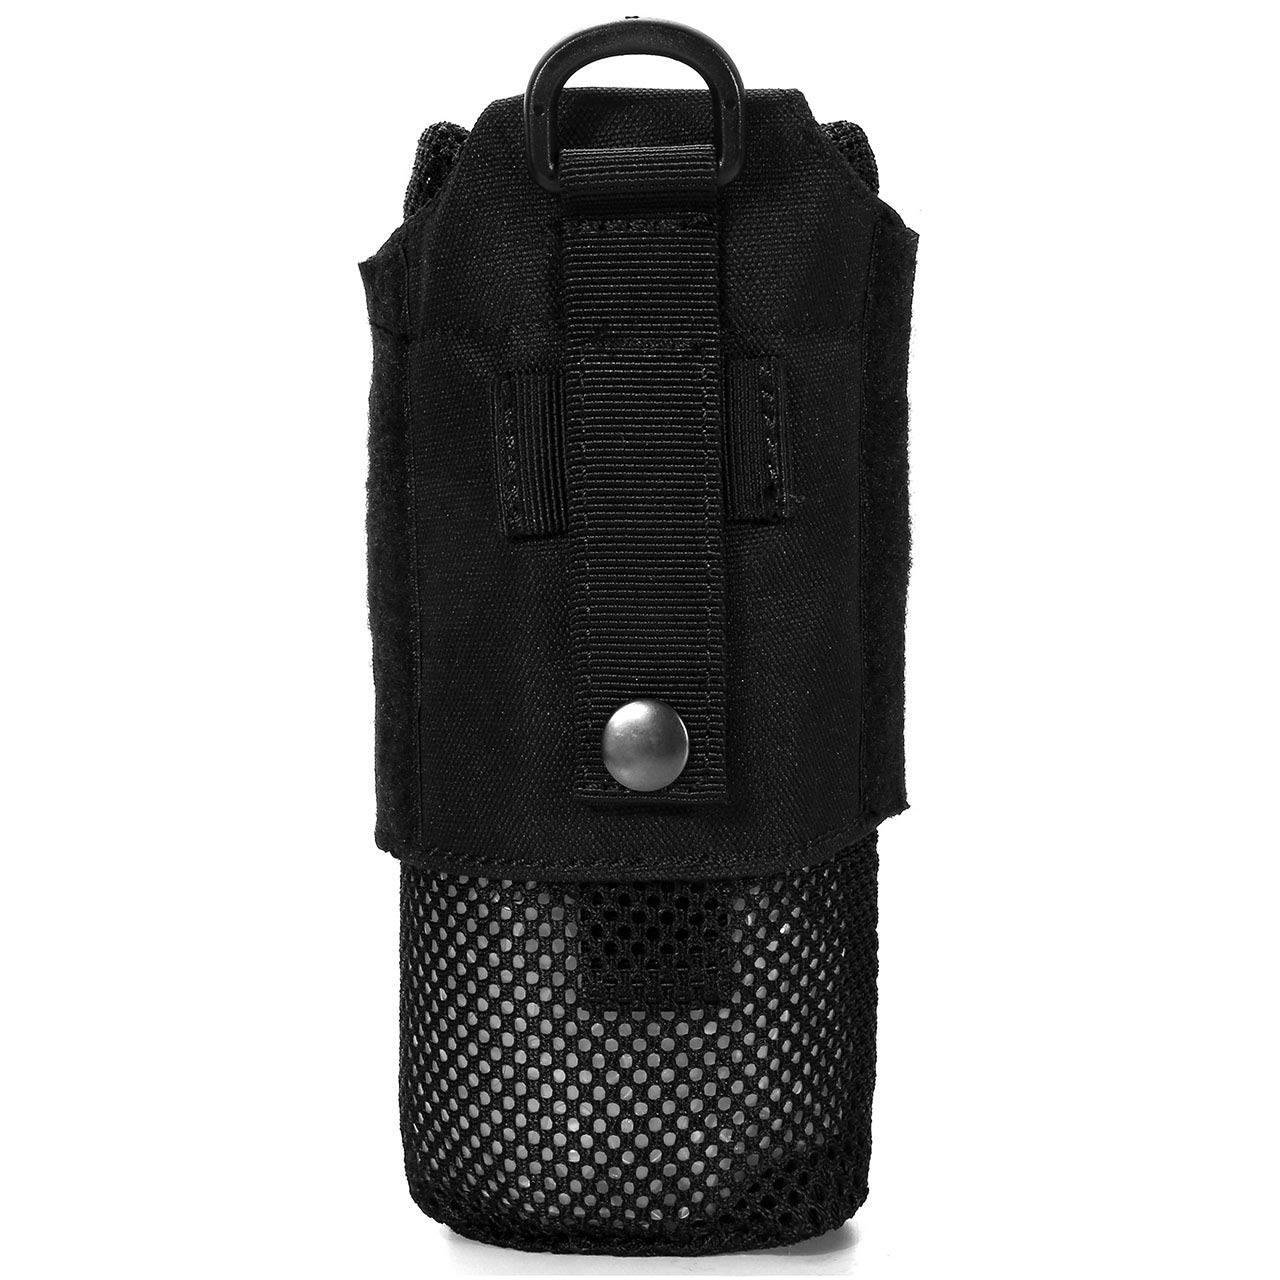 Tactical Military System Water Bottle Bag Kettle Pouch Holder Bag Outdoor   FJ